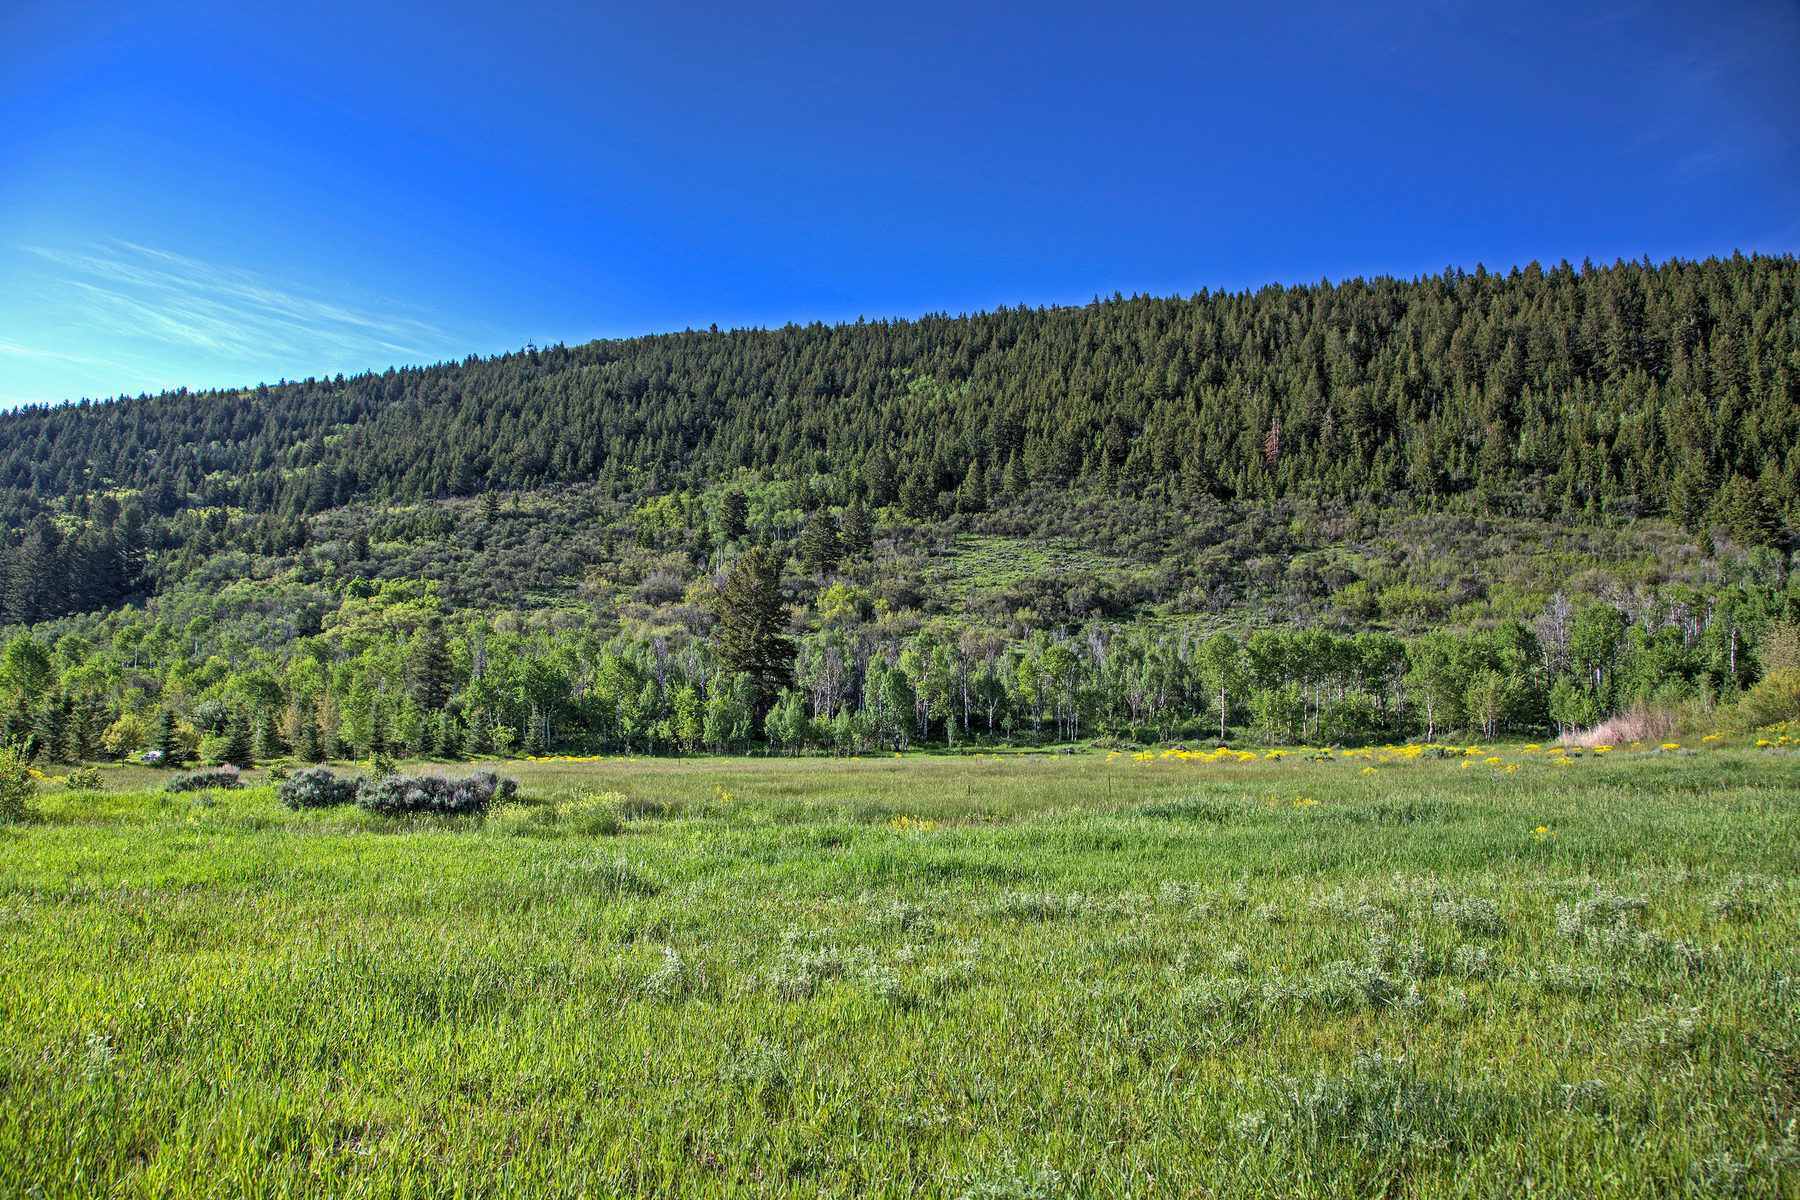 Terreno por un Venta en Over 5 Acres, Quarry Mountain Ranch Homesite 3983 Quarry Mountain Rd Park City, Utah, 84098 Estados Unidos